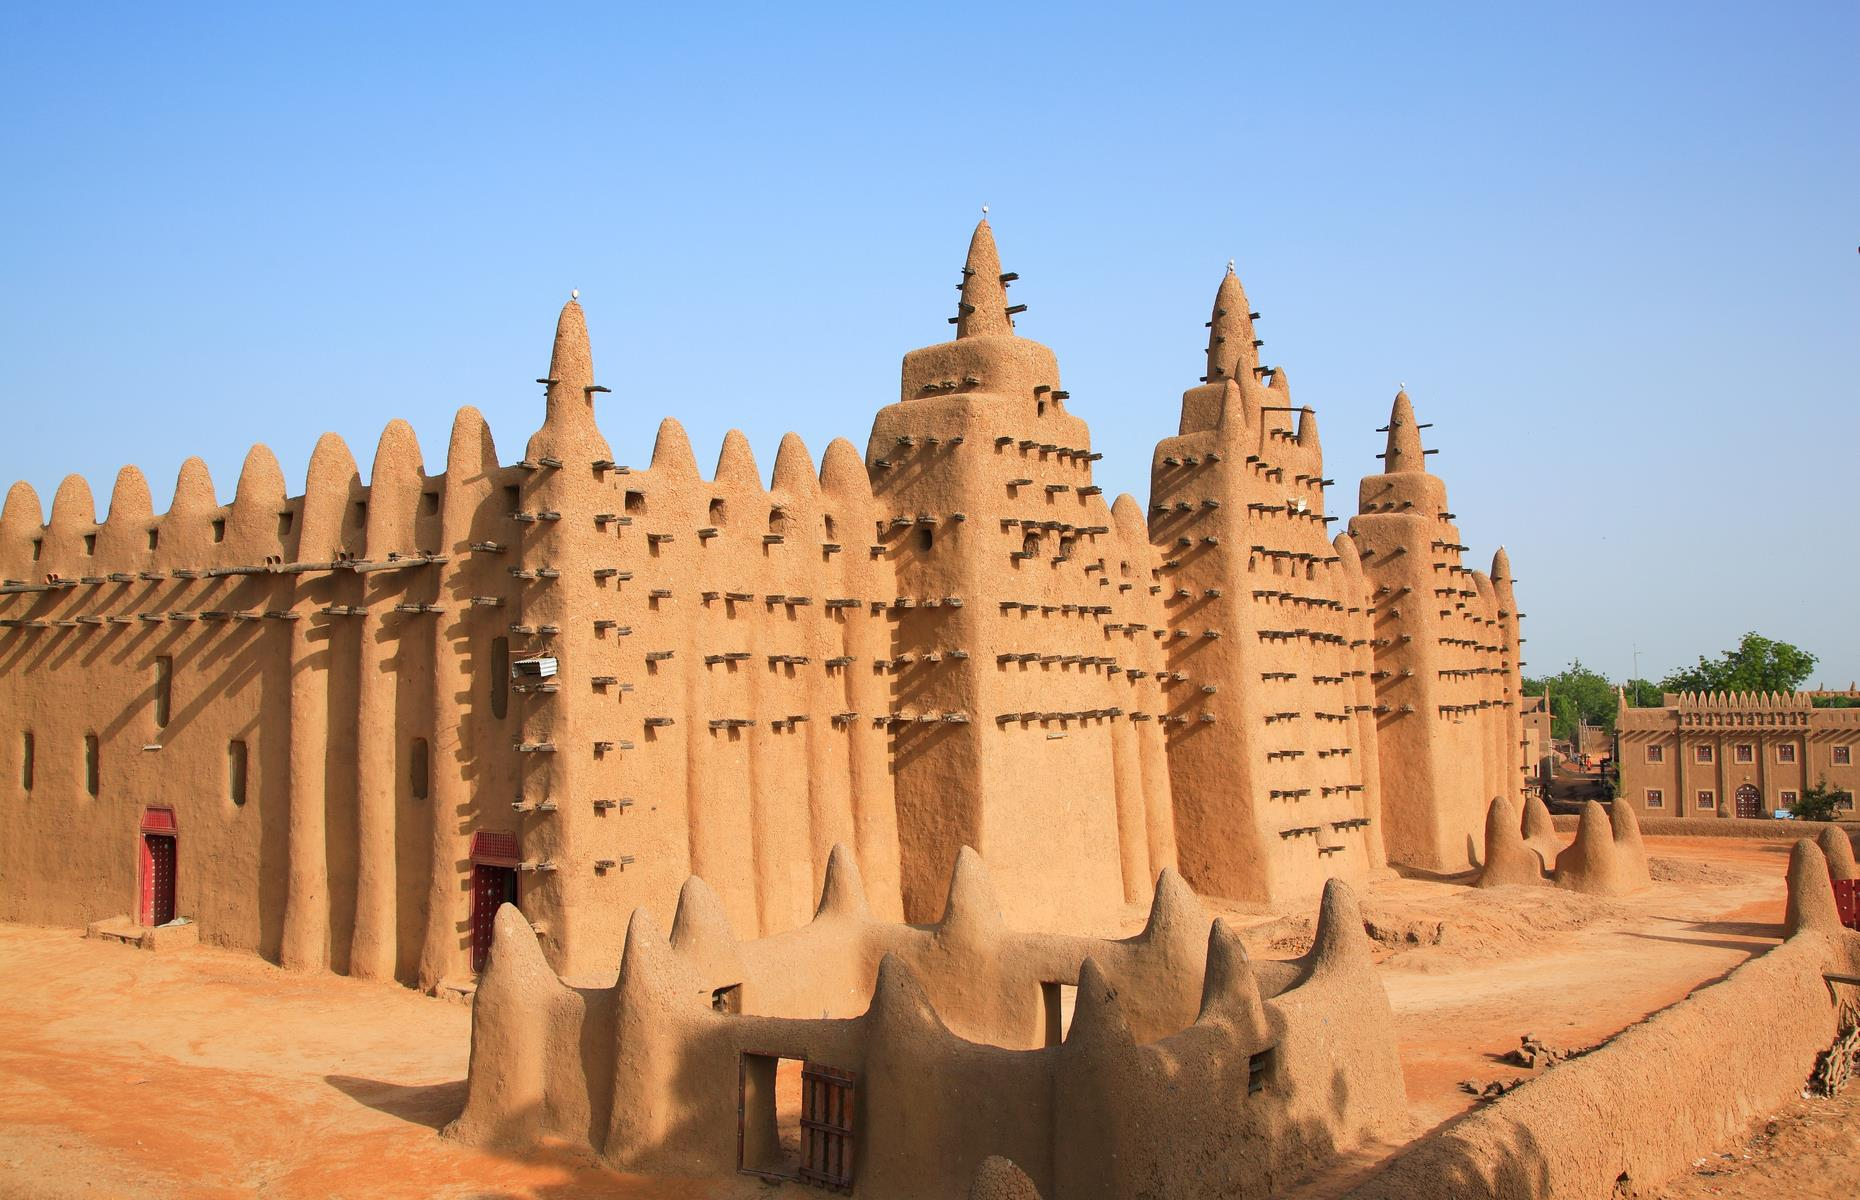 Slide 27 of 53: One of the oldest towns of sub-Saharan Africa, the Old Town of Djenné has been inhabited since 250 BC. It became an important link in the trans-Saharan gold trade and was one of the centers for the propagation of Islam in the 15th and 16th centuries. Nearly 2,000 of its original mud-walled houses have survived. Its mosque and other historic buildings were designated a World Heritage Site in 1988 for being representative of Islamic architecture in sub-Saharan Africa. It was inscribed on the danger list in 2016 due to insecurity affecting the area.